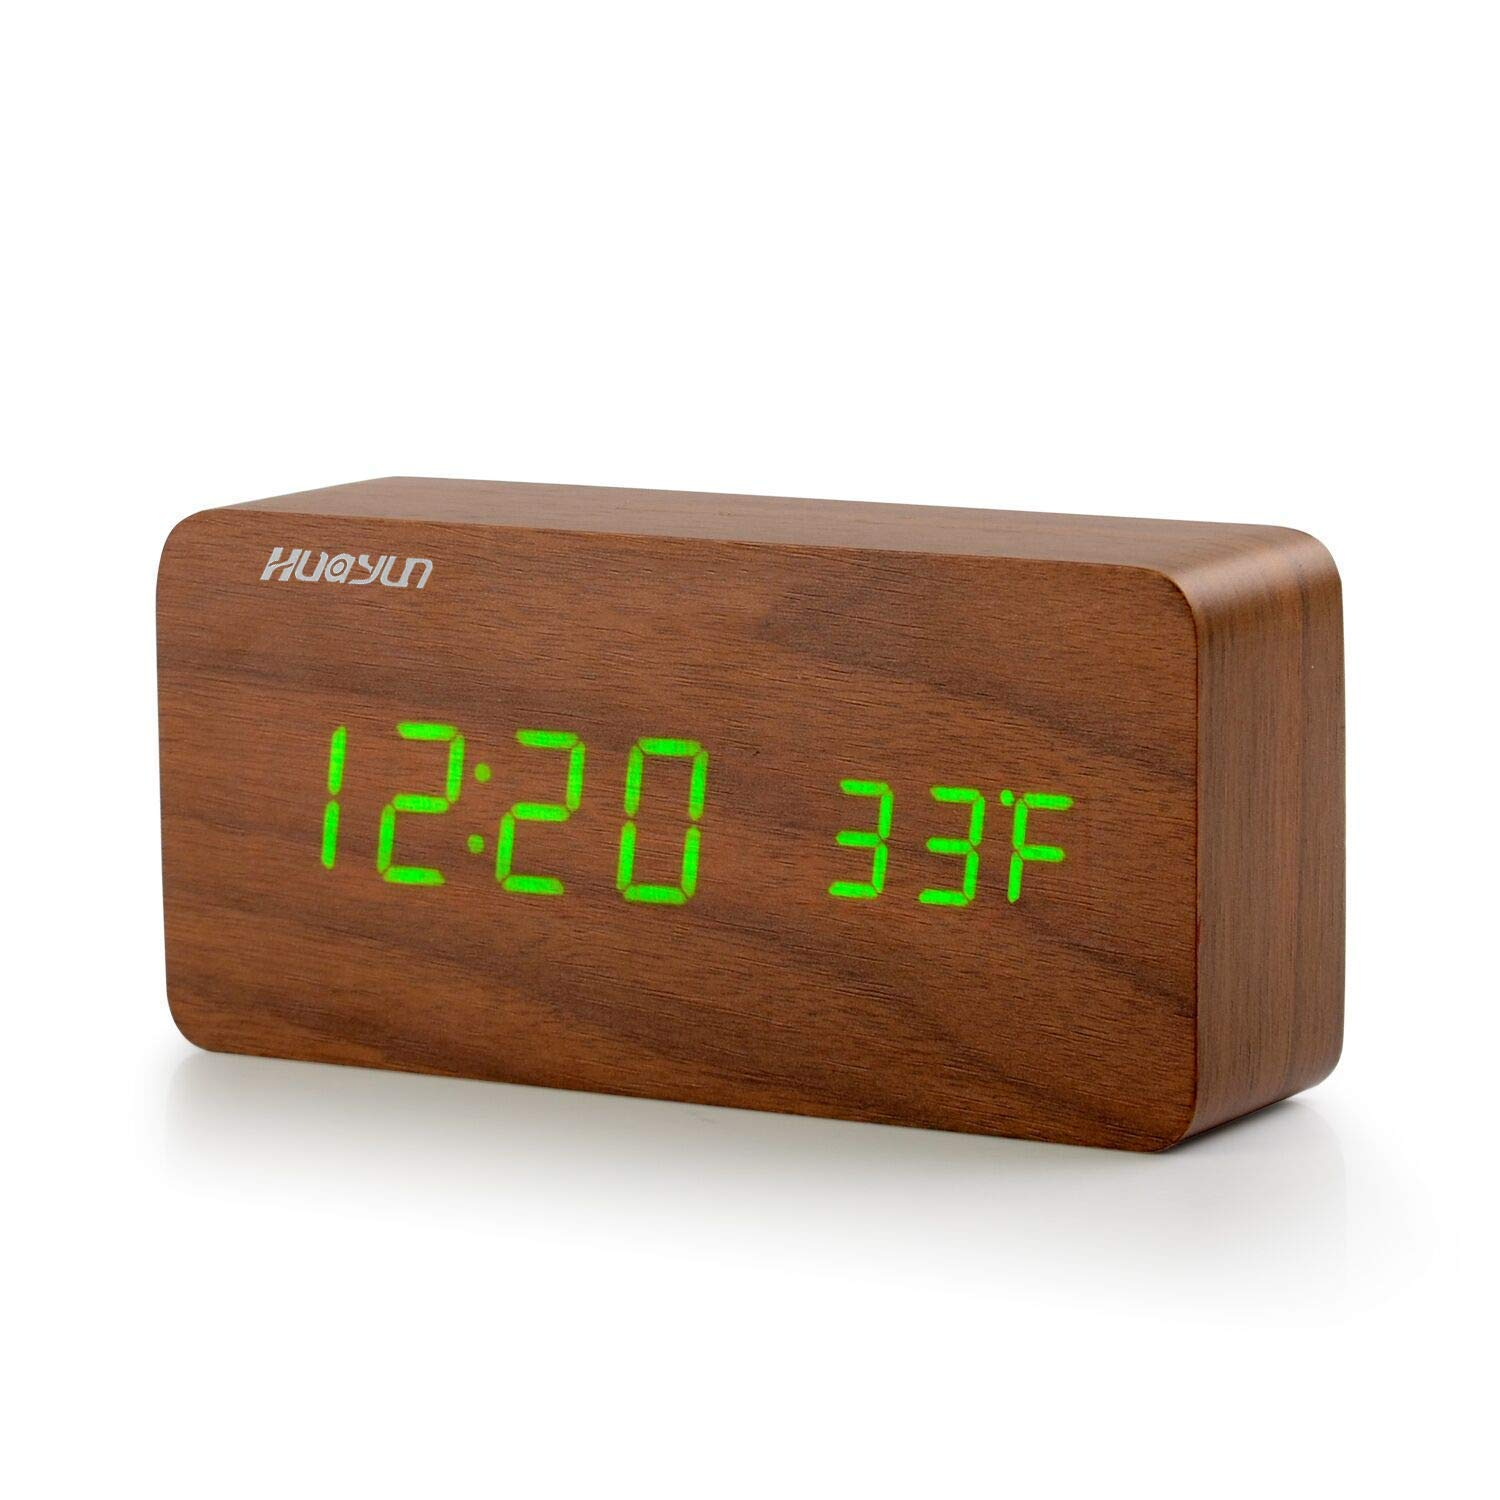 HUAYUN Wood Alarm Clock,Digital Clocks for Bedroom - Desk Clock Office,USB Charging,Date and Temperature Display,3 Set of Alarm and 3-Level Green LED,Voice Control